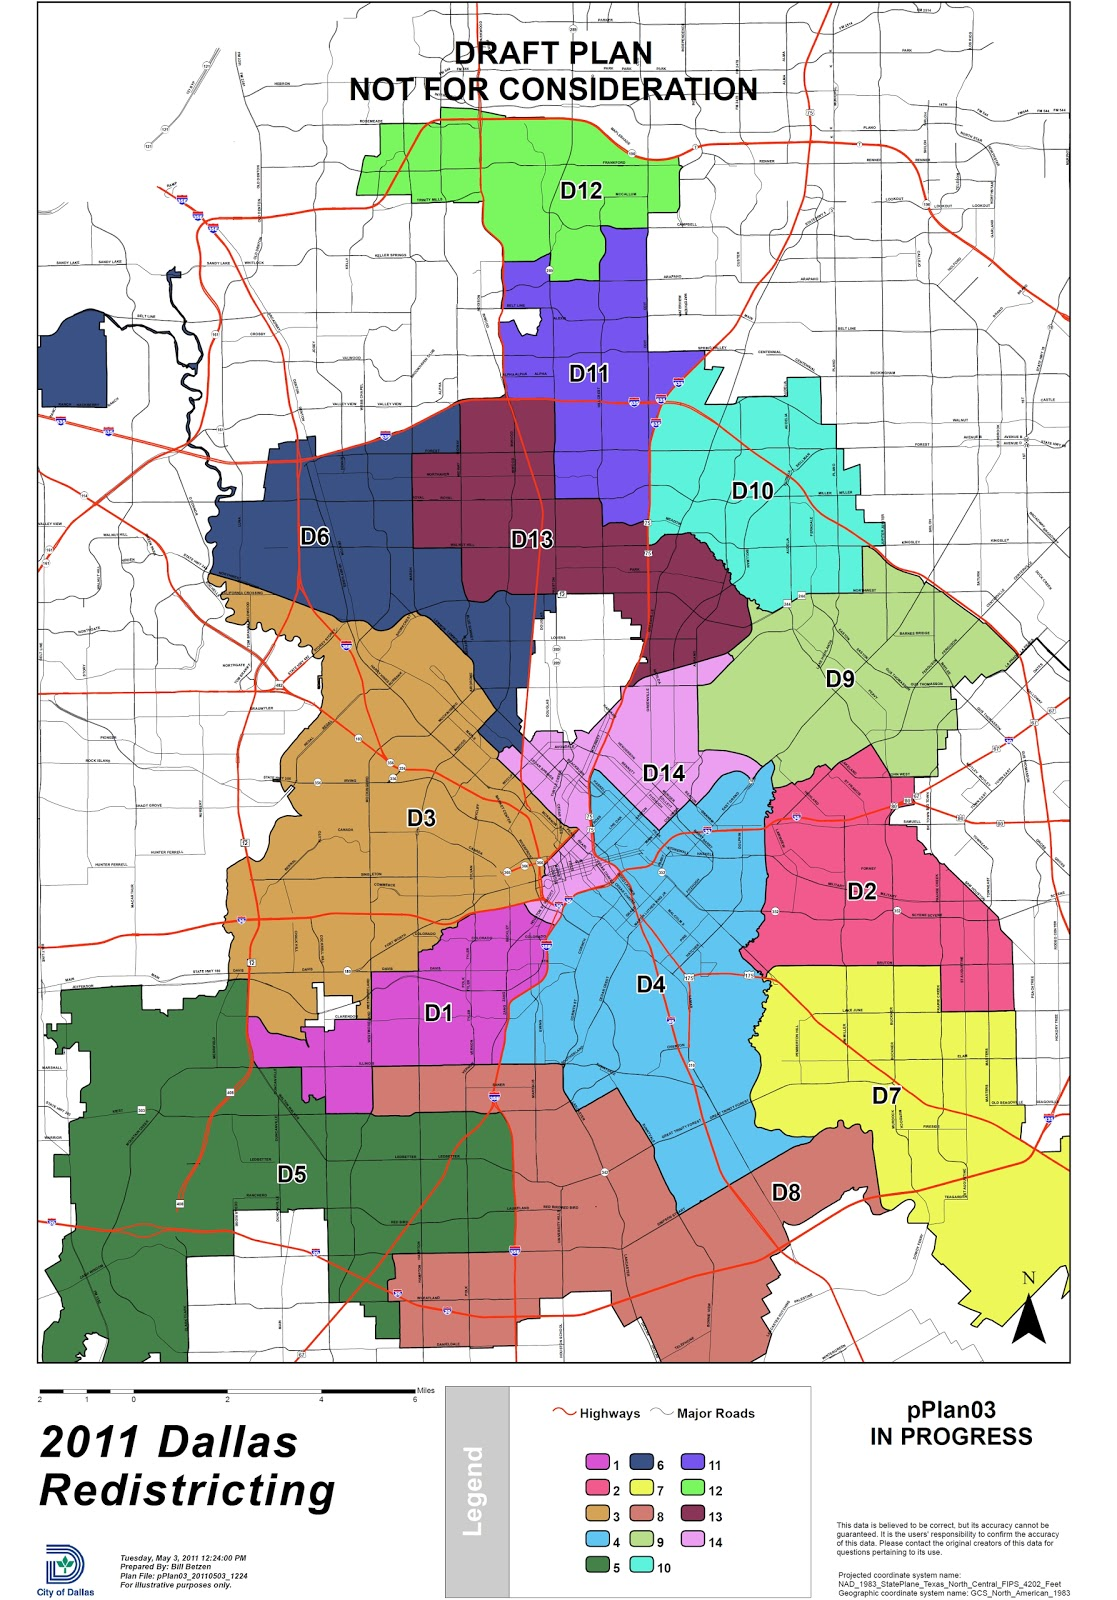 Dallas Redistricting 2011: Dallas City Council Redistricting Map, 5 on